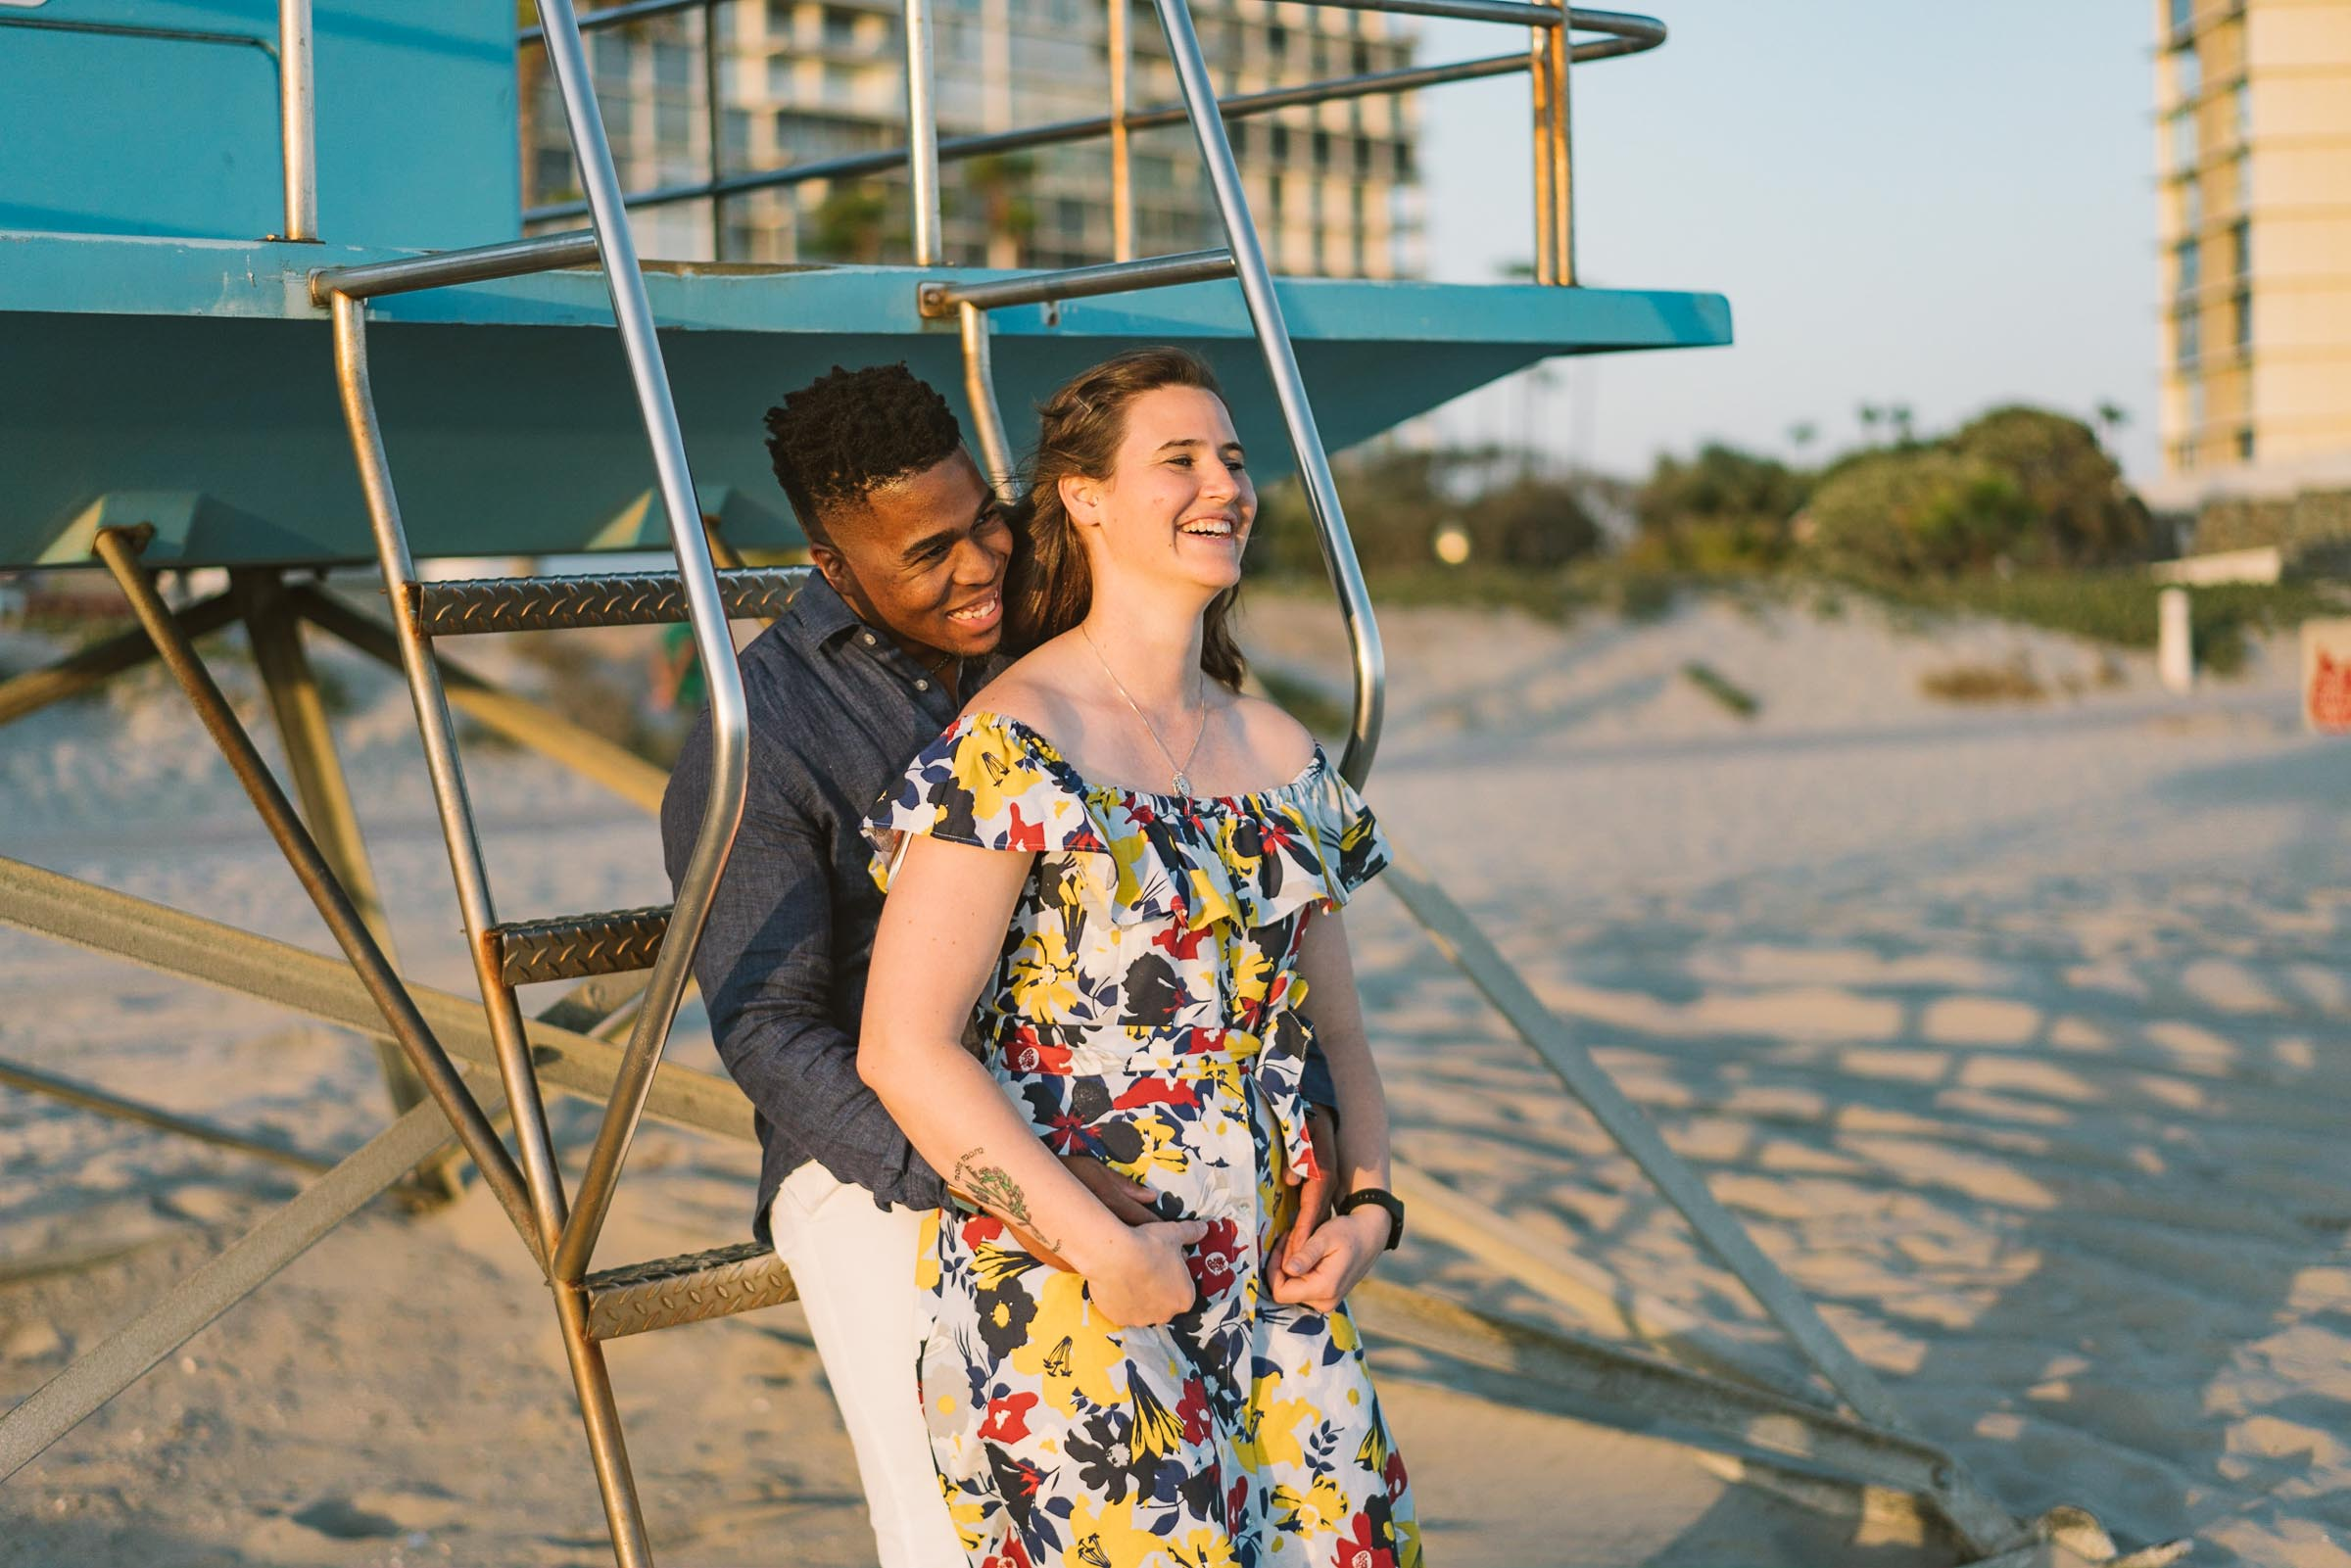 engagement session coronado lifeguard tower island sunset san diego california white girl yellow blue red dress african american interracial couple dusk